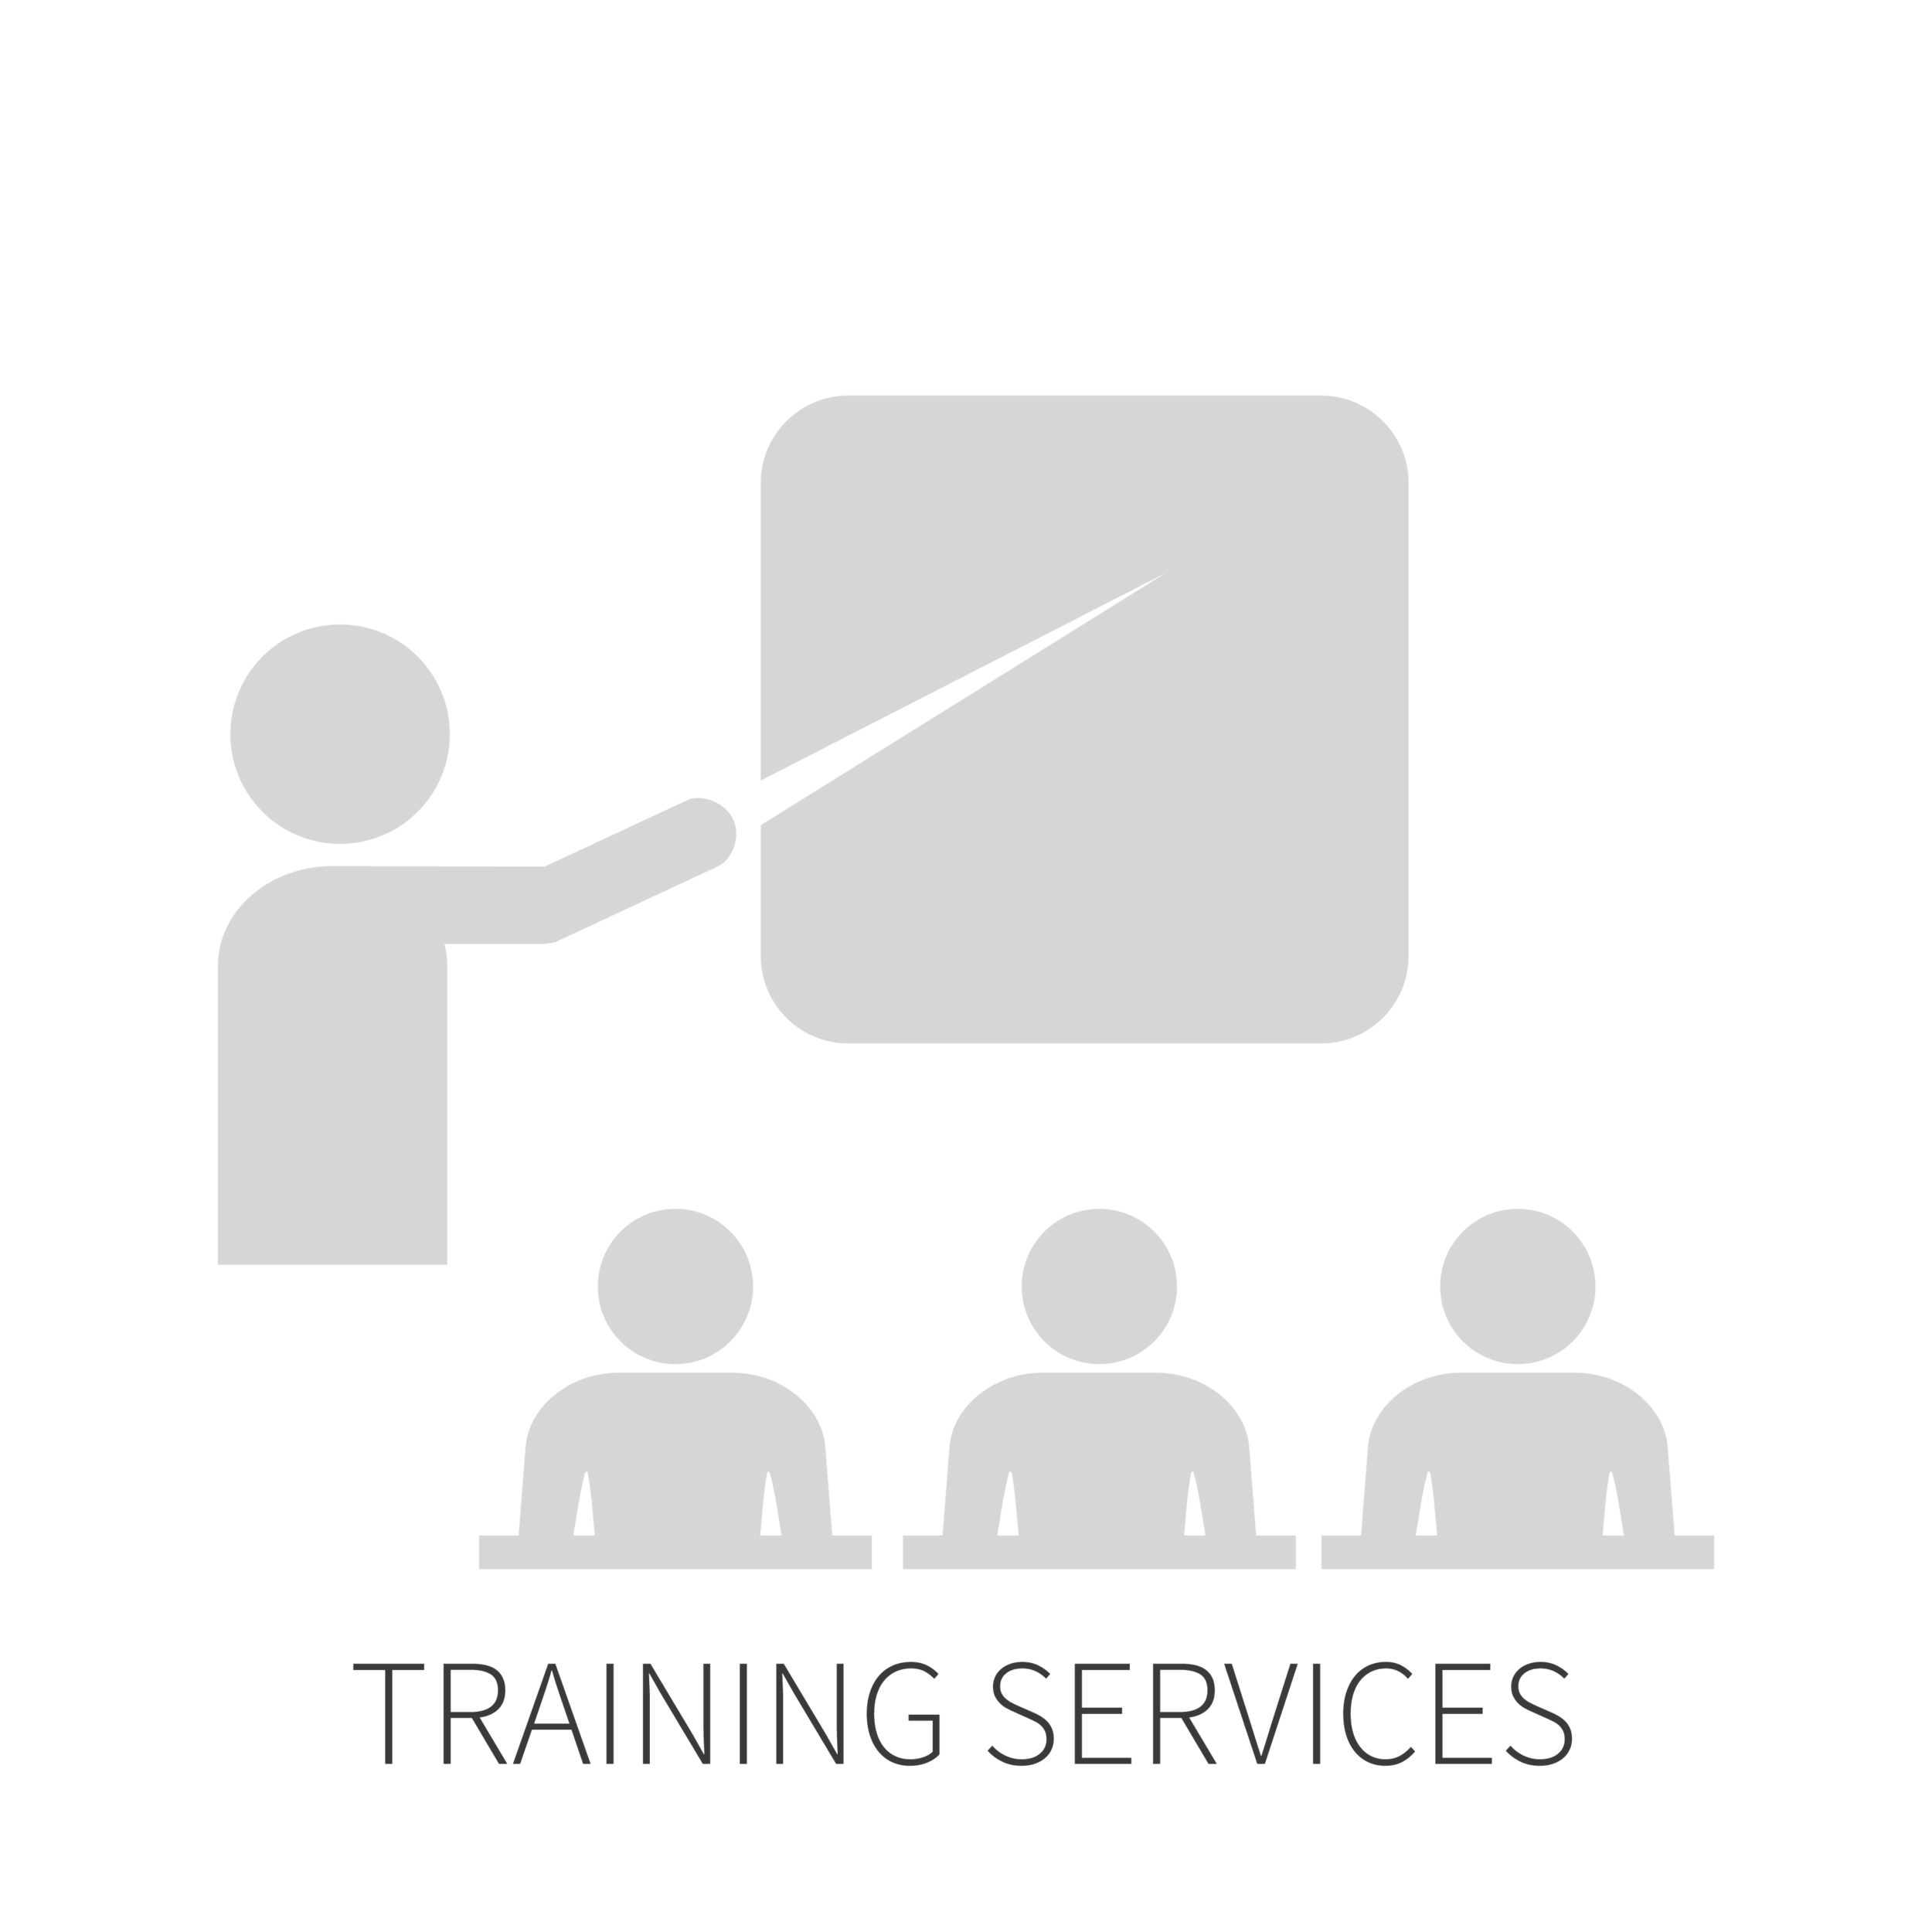 GETSPP_SERVICES_ICONS-04.png